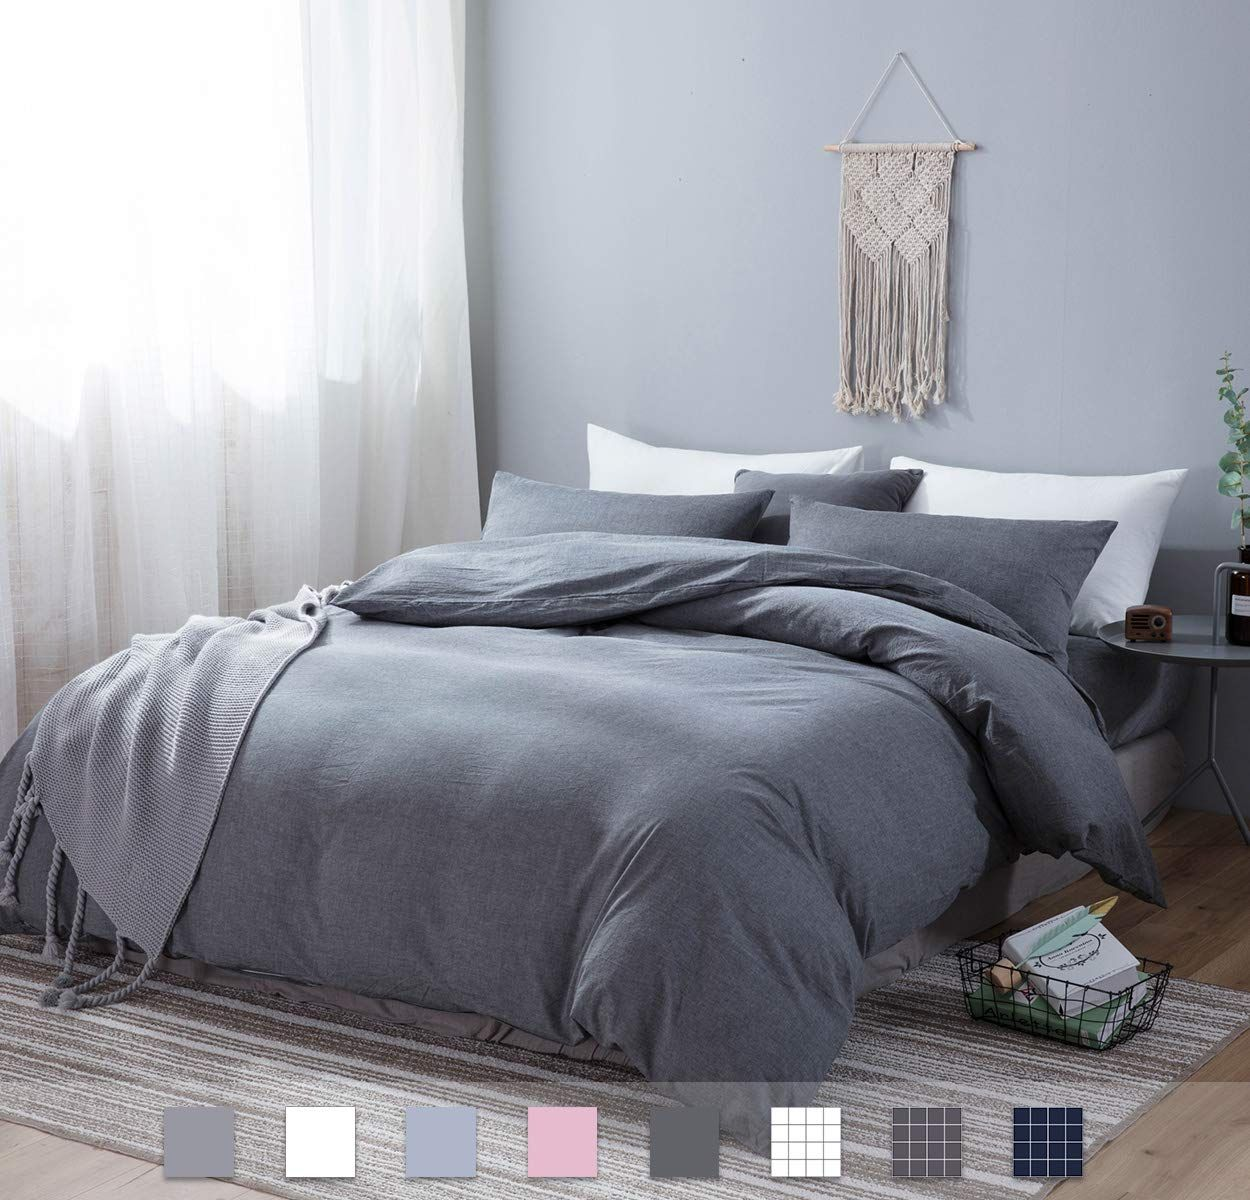 Sleepbella Duvet Cover Set 3 Pieces Washed Cotton Comforter Quilt Cover Gray Zip King Read More At In 2020 Duvet Cover Sets Bedding Sets Grey Bed Duvet Covers